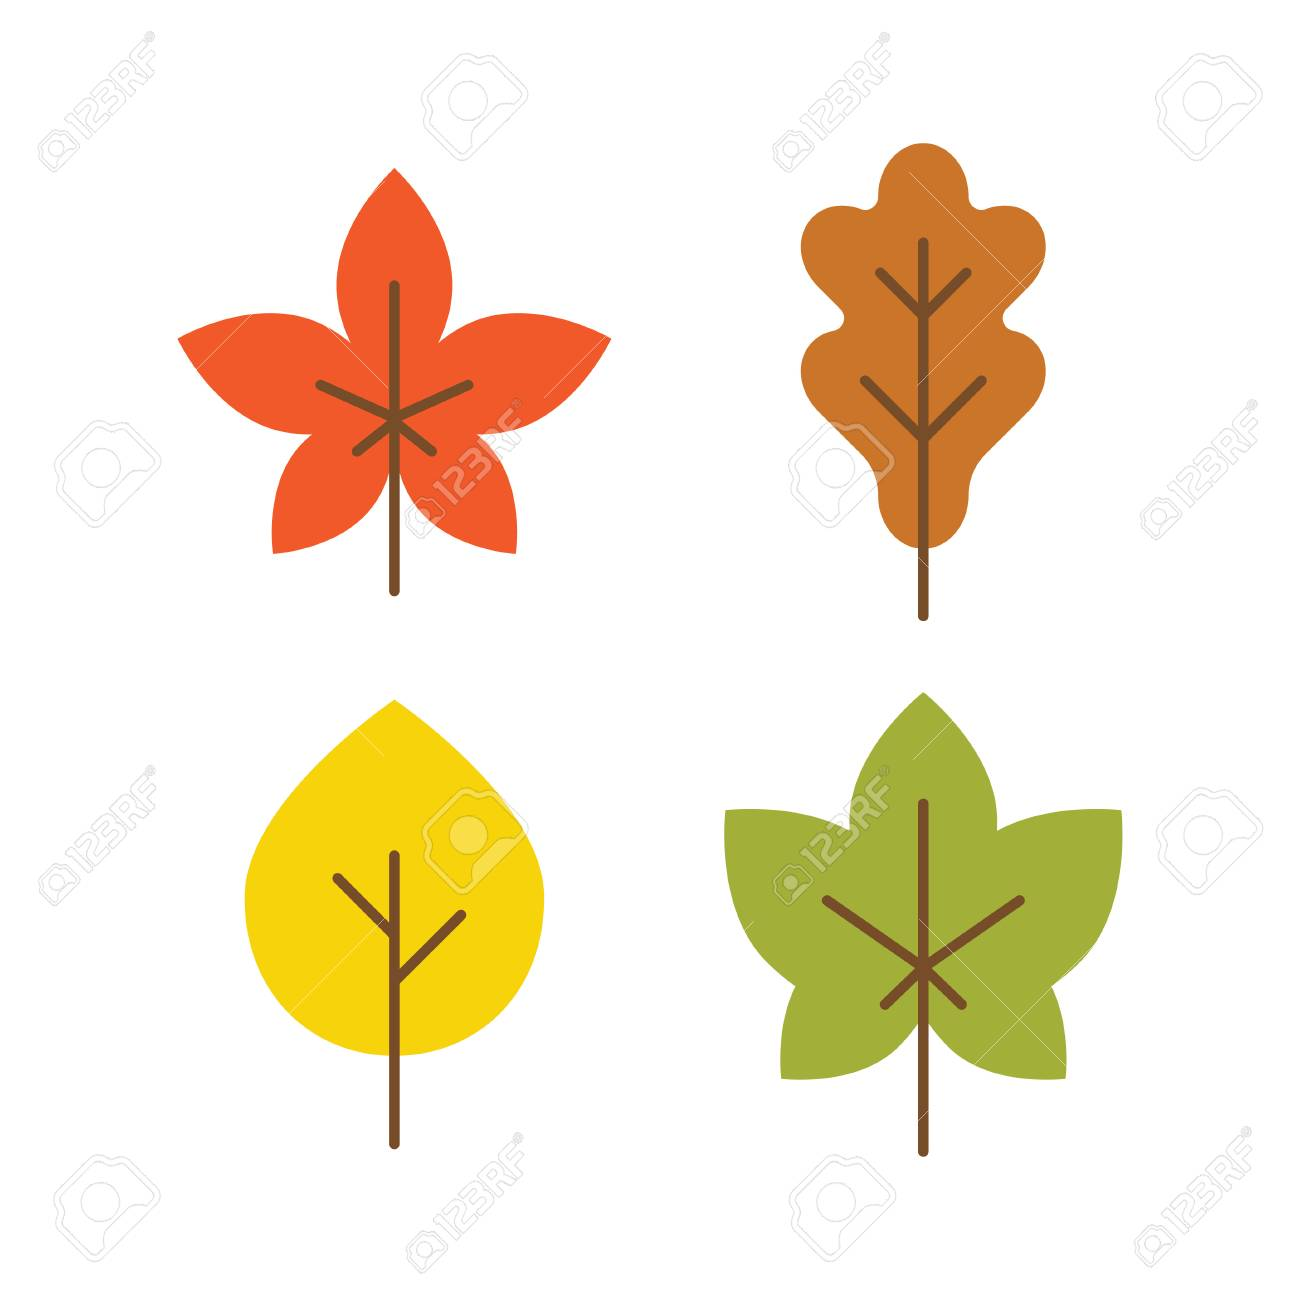 Multicolor Autumn Leaves Flat Icons Fall Vector Royalty Free Cliparts Vectors And Stock Illustration Image 65179610